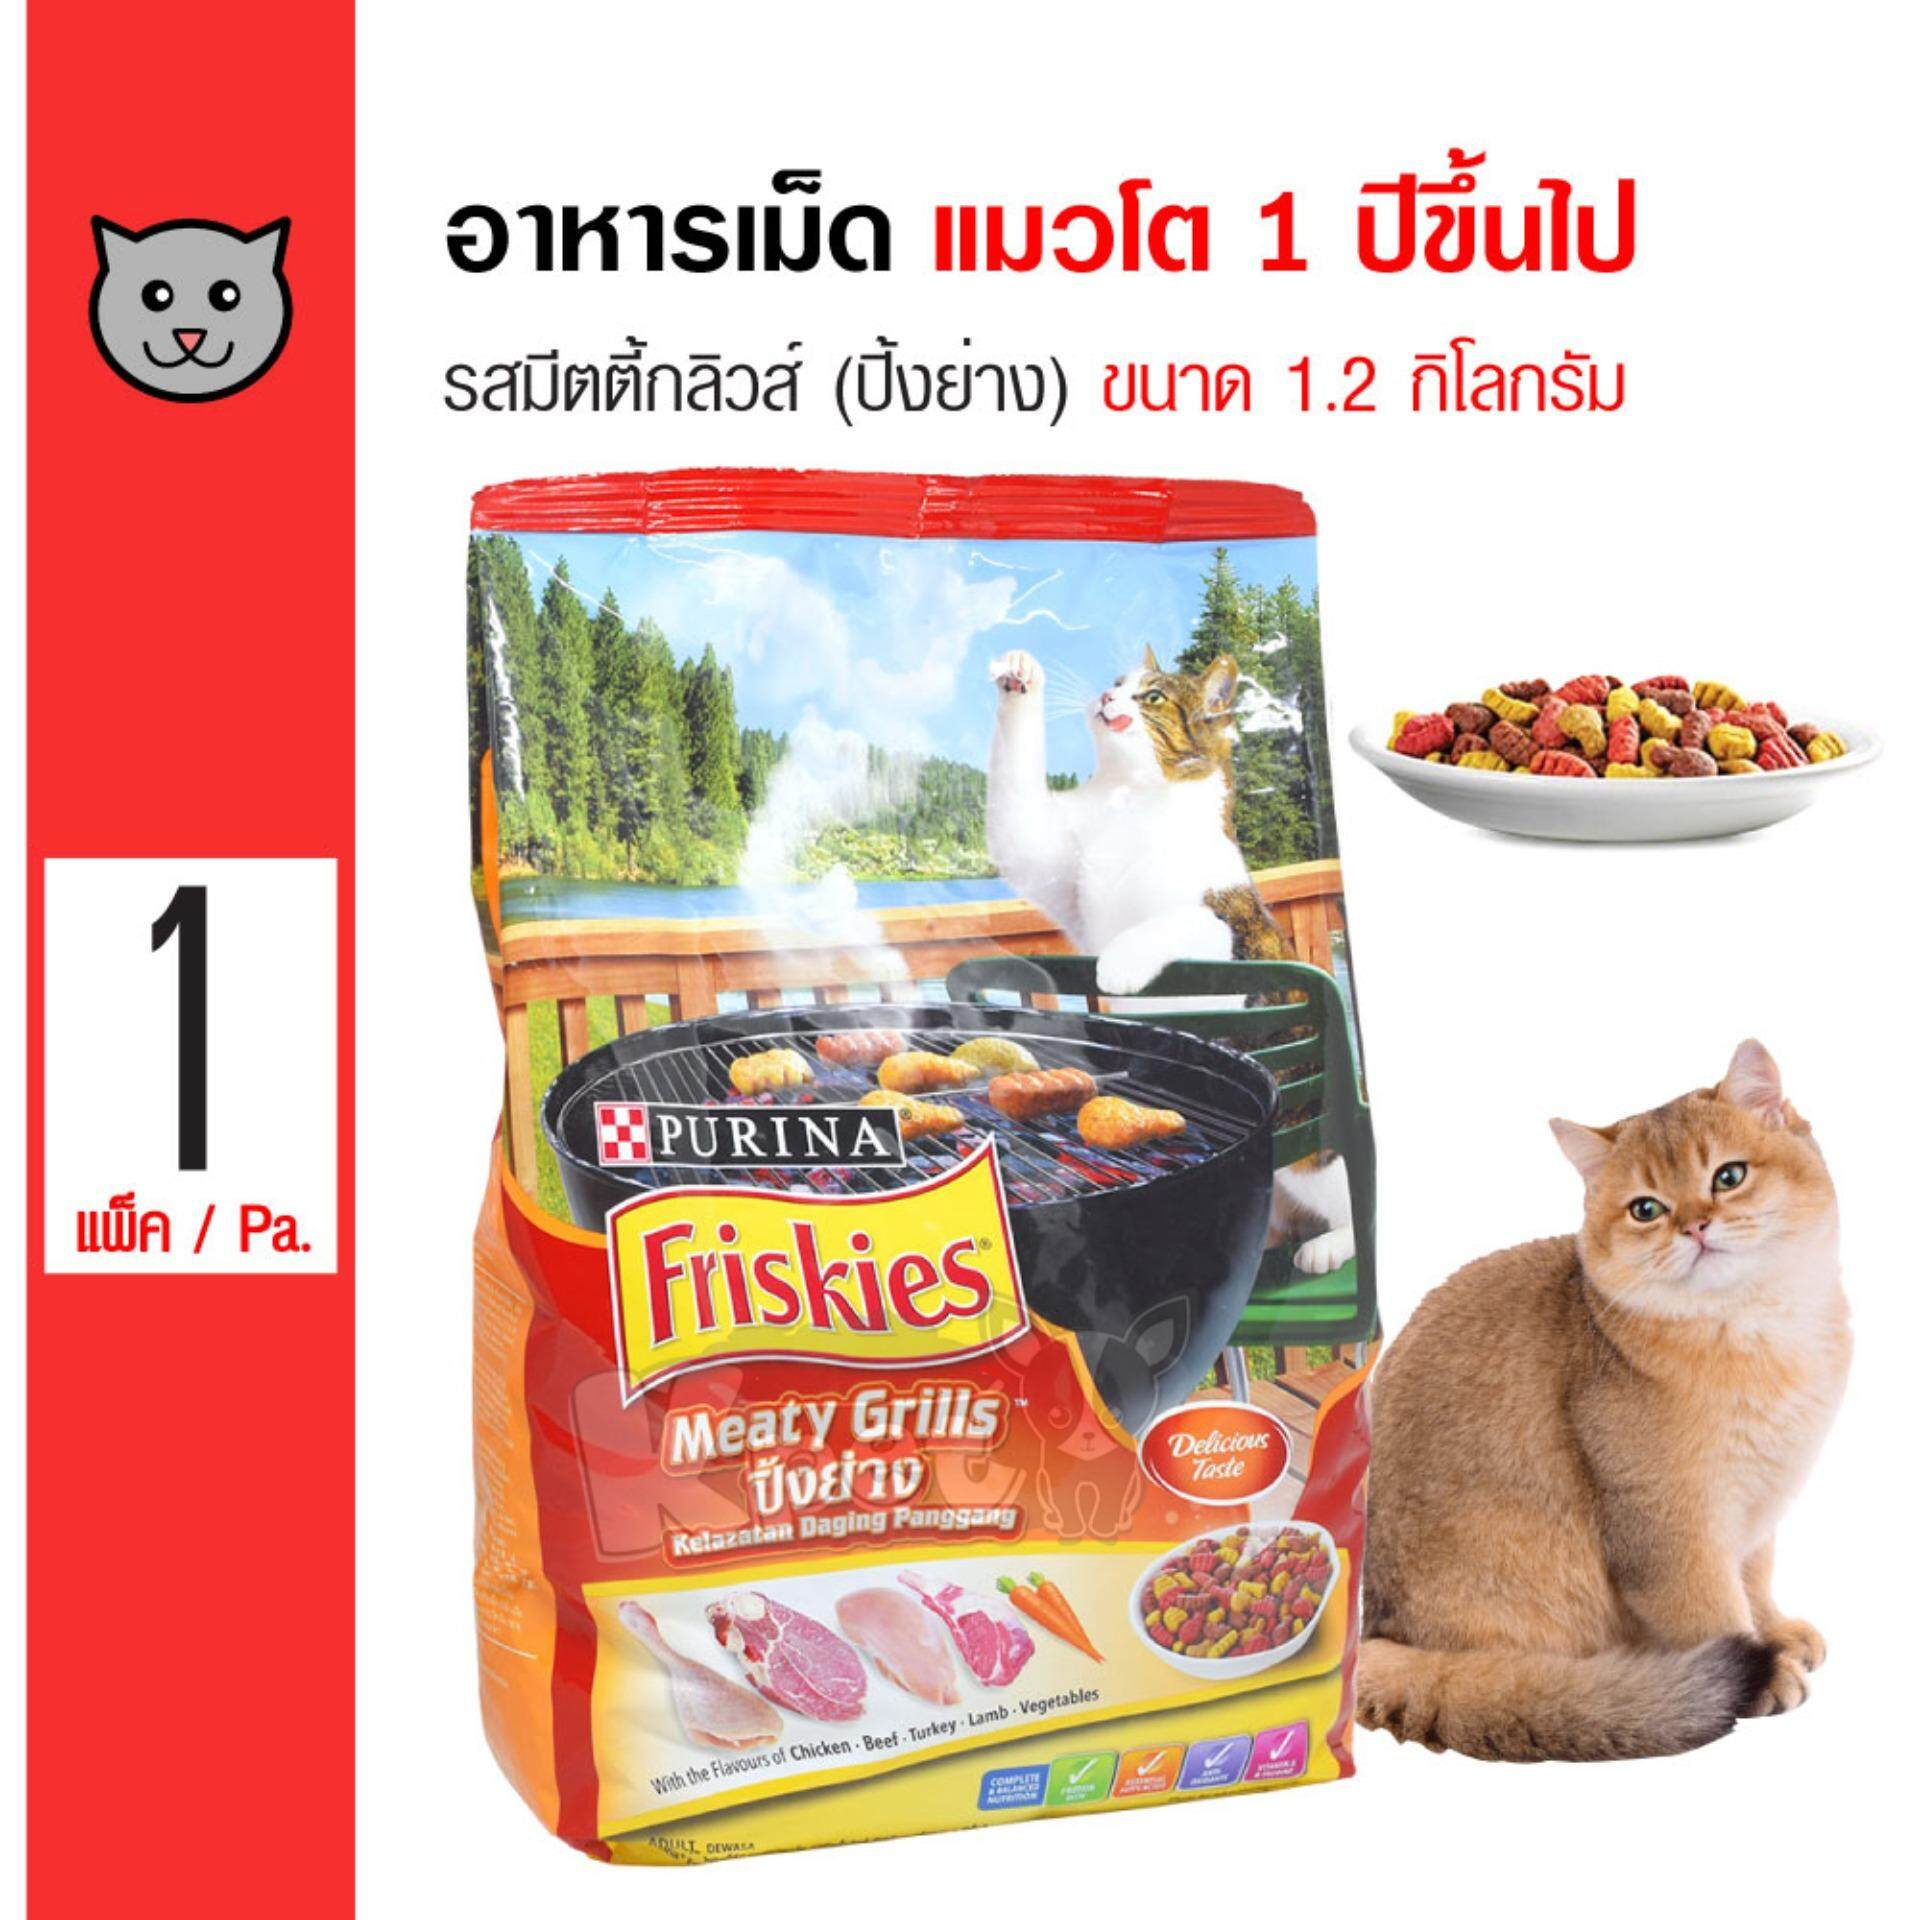 Friskies Cat Food Compare Electrolux Edv7552 Sensor Dry Vented Dryer 7 5 Kg Price In Meaty